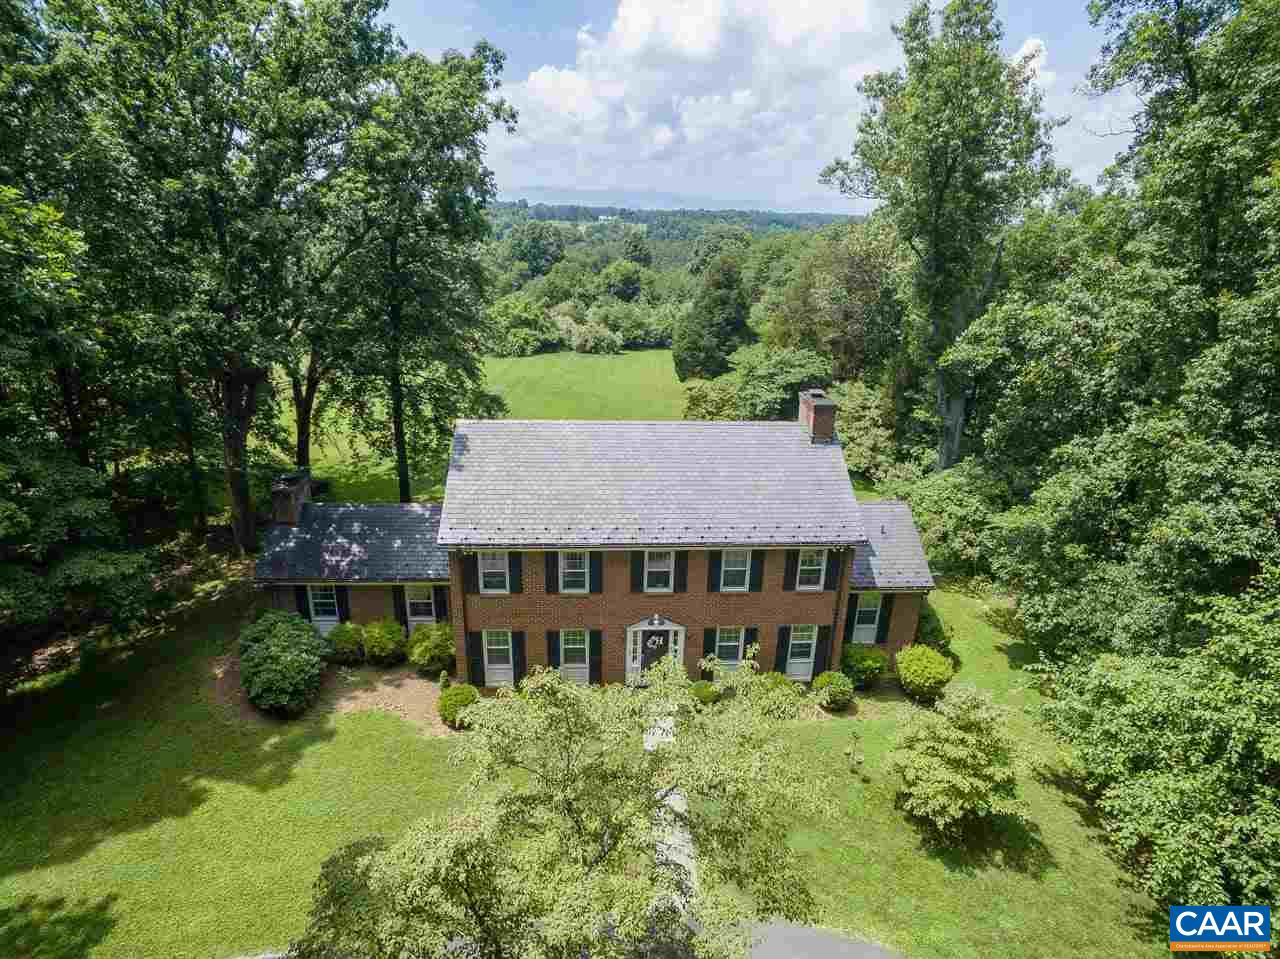 Land for Sale at 750 BRIDLEPATH Drive Earlysville, Virginia 22936 United States